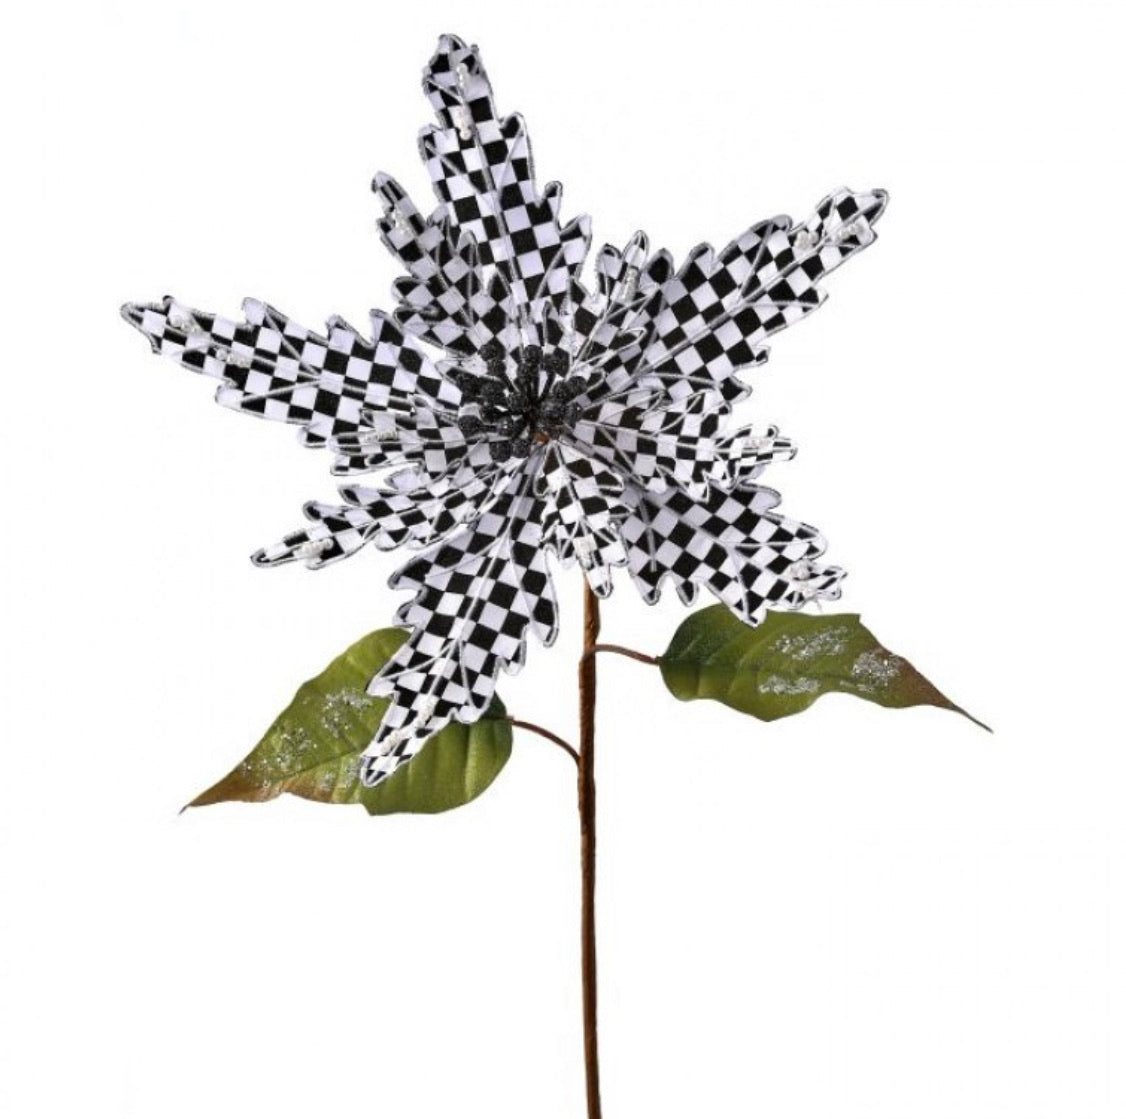 Harlequin poinsettias - black and white with pearls